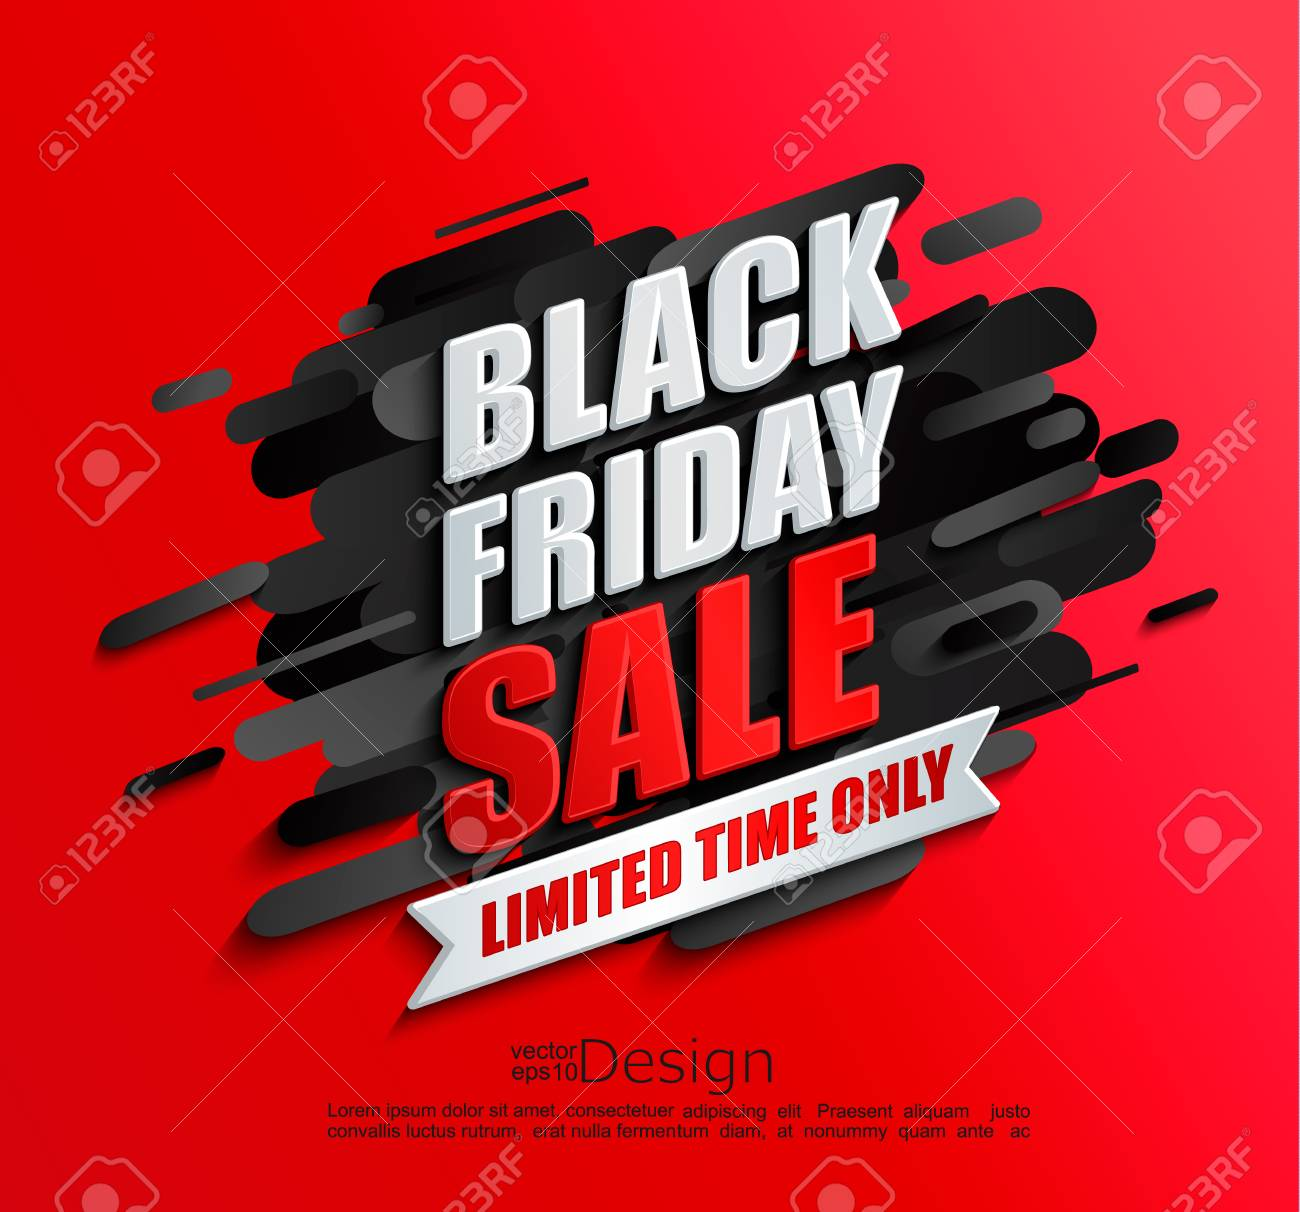 Dynamic Black Friday Sale Banner On Red Background Perfect Template Royalty Free Cliparts Vectors And Stock Illustration Image 113574787